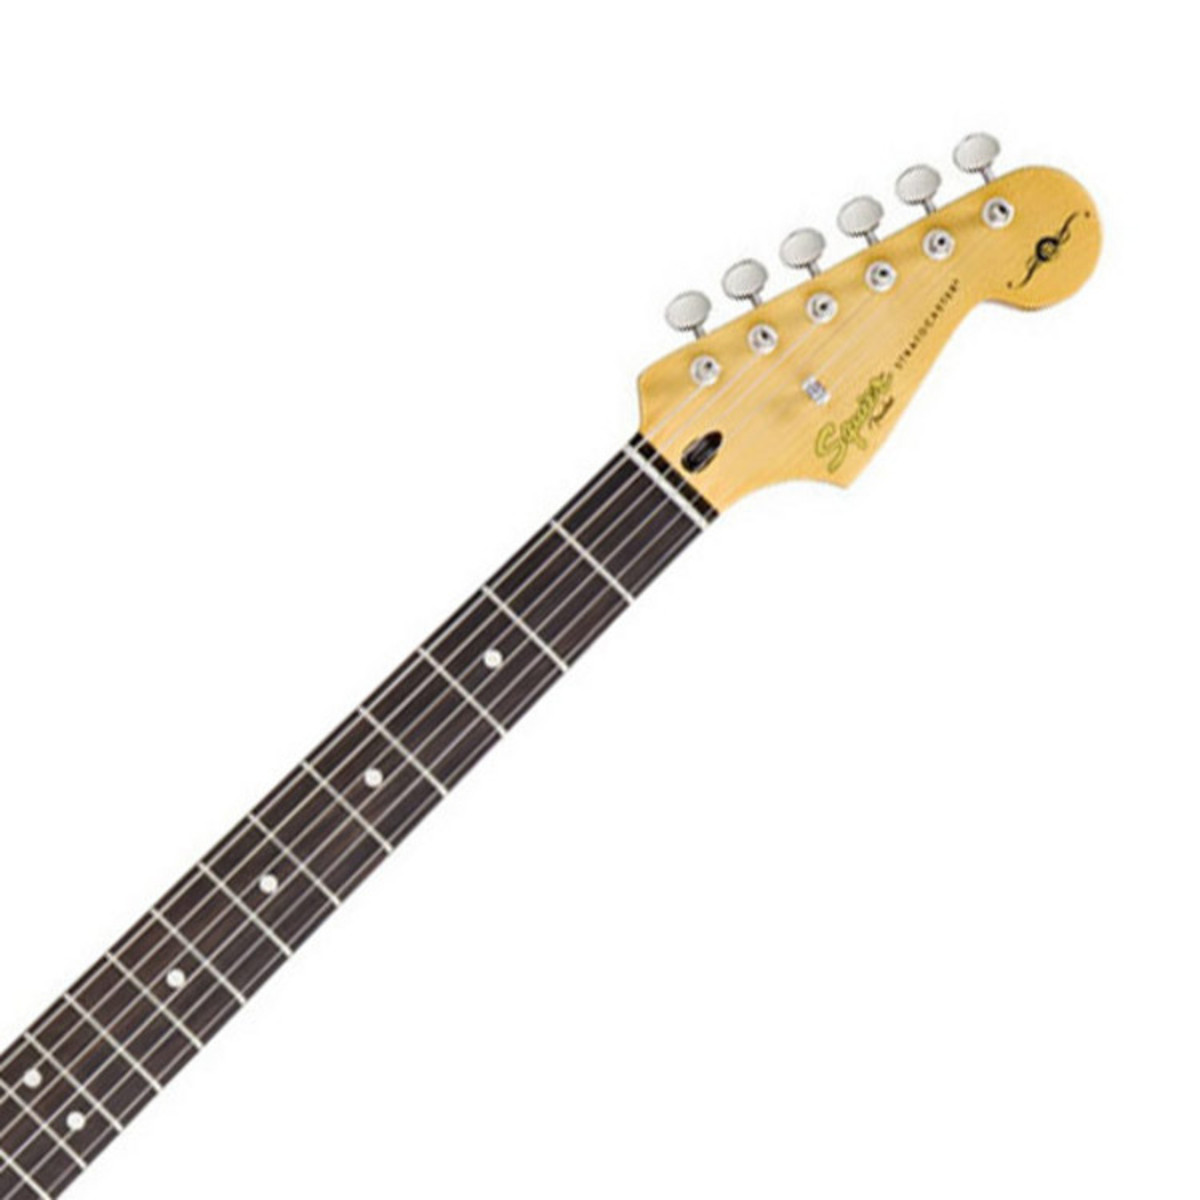 squier by fender simon neil stratocaster biffy clyro signature at. Black Bedroom Furniture Sets. Home Design Ideas